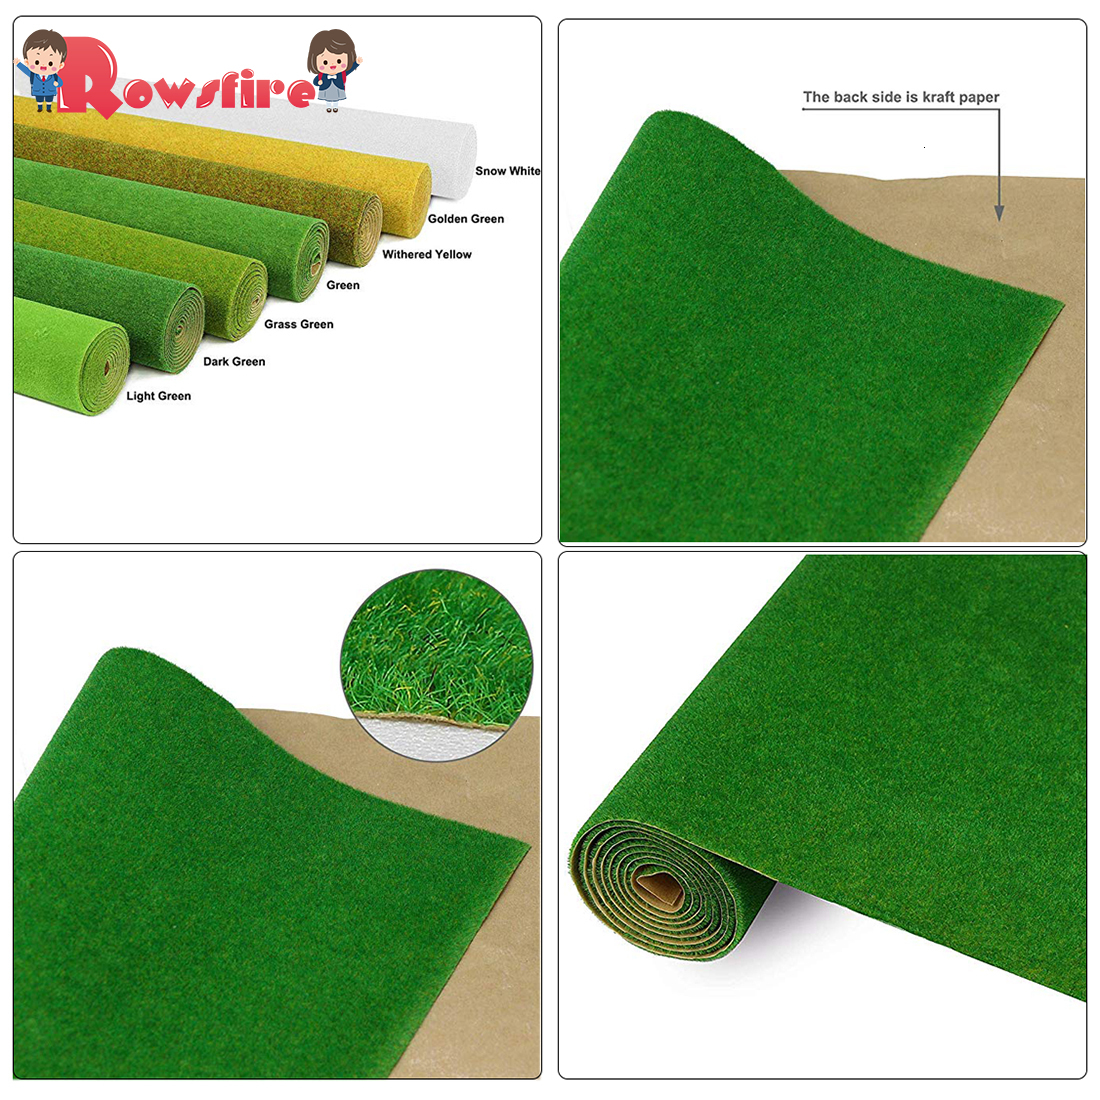 1 Pcs 41 X 100cm Artificial Grassland Grass Lawn Turf Grass DIY Railway Model Sand Table Model Decor - Grass Green